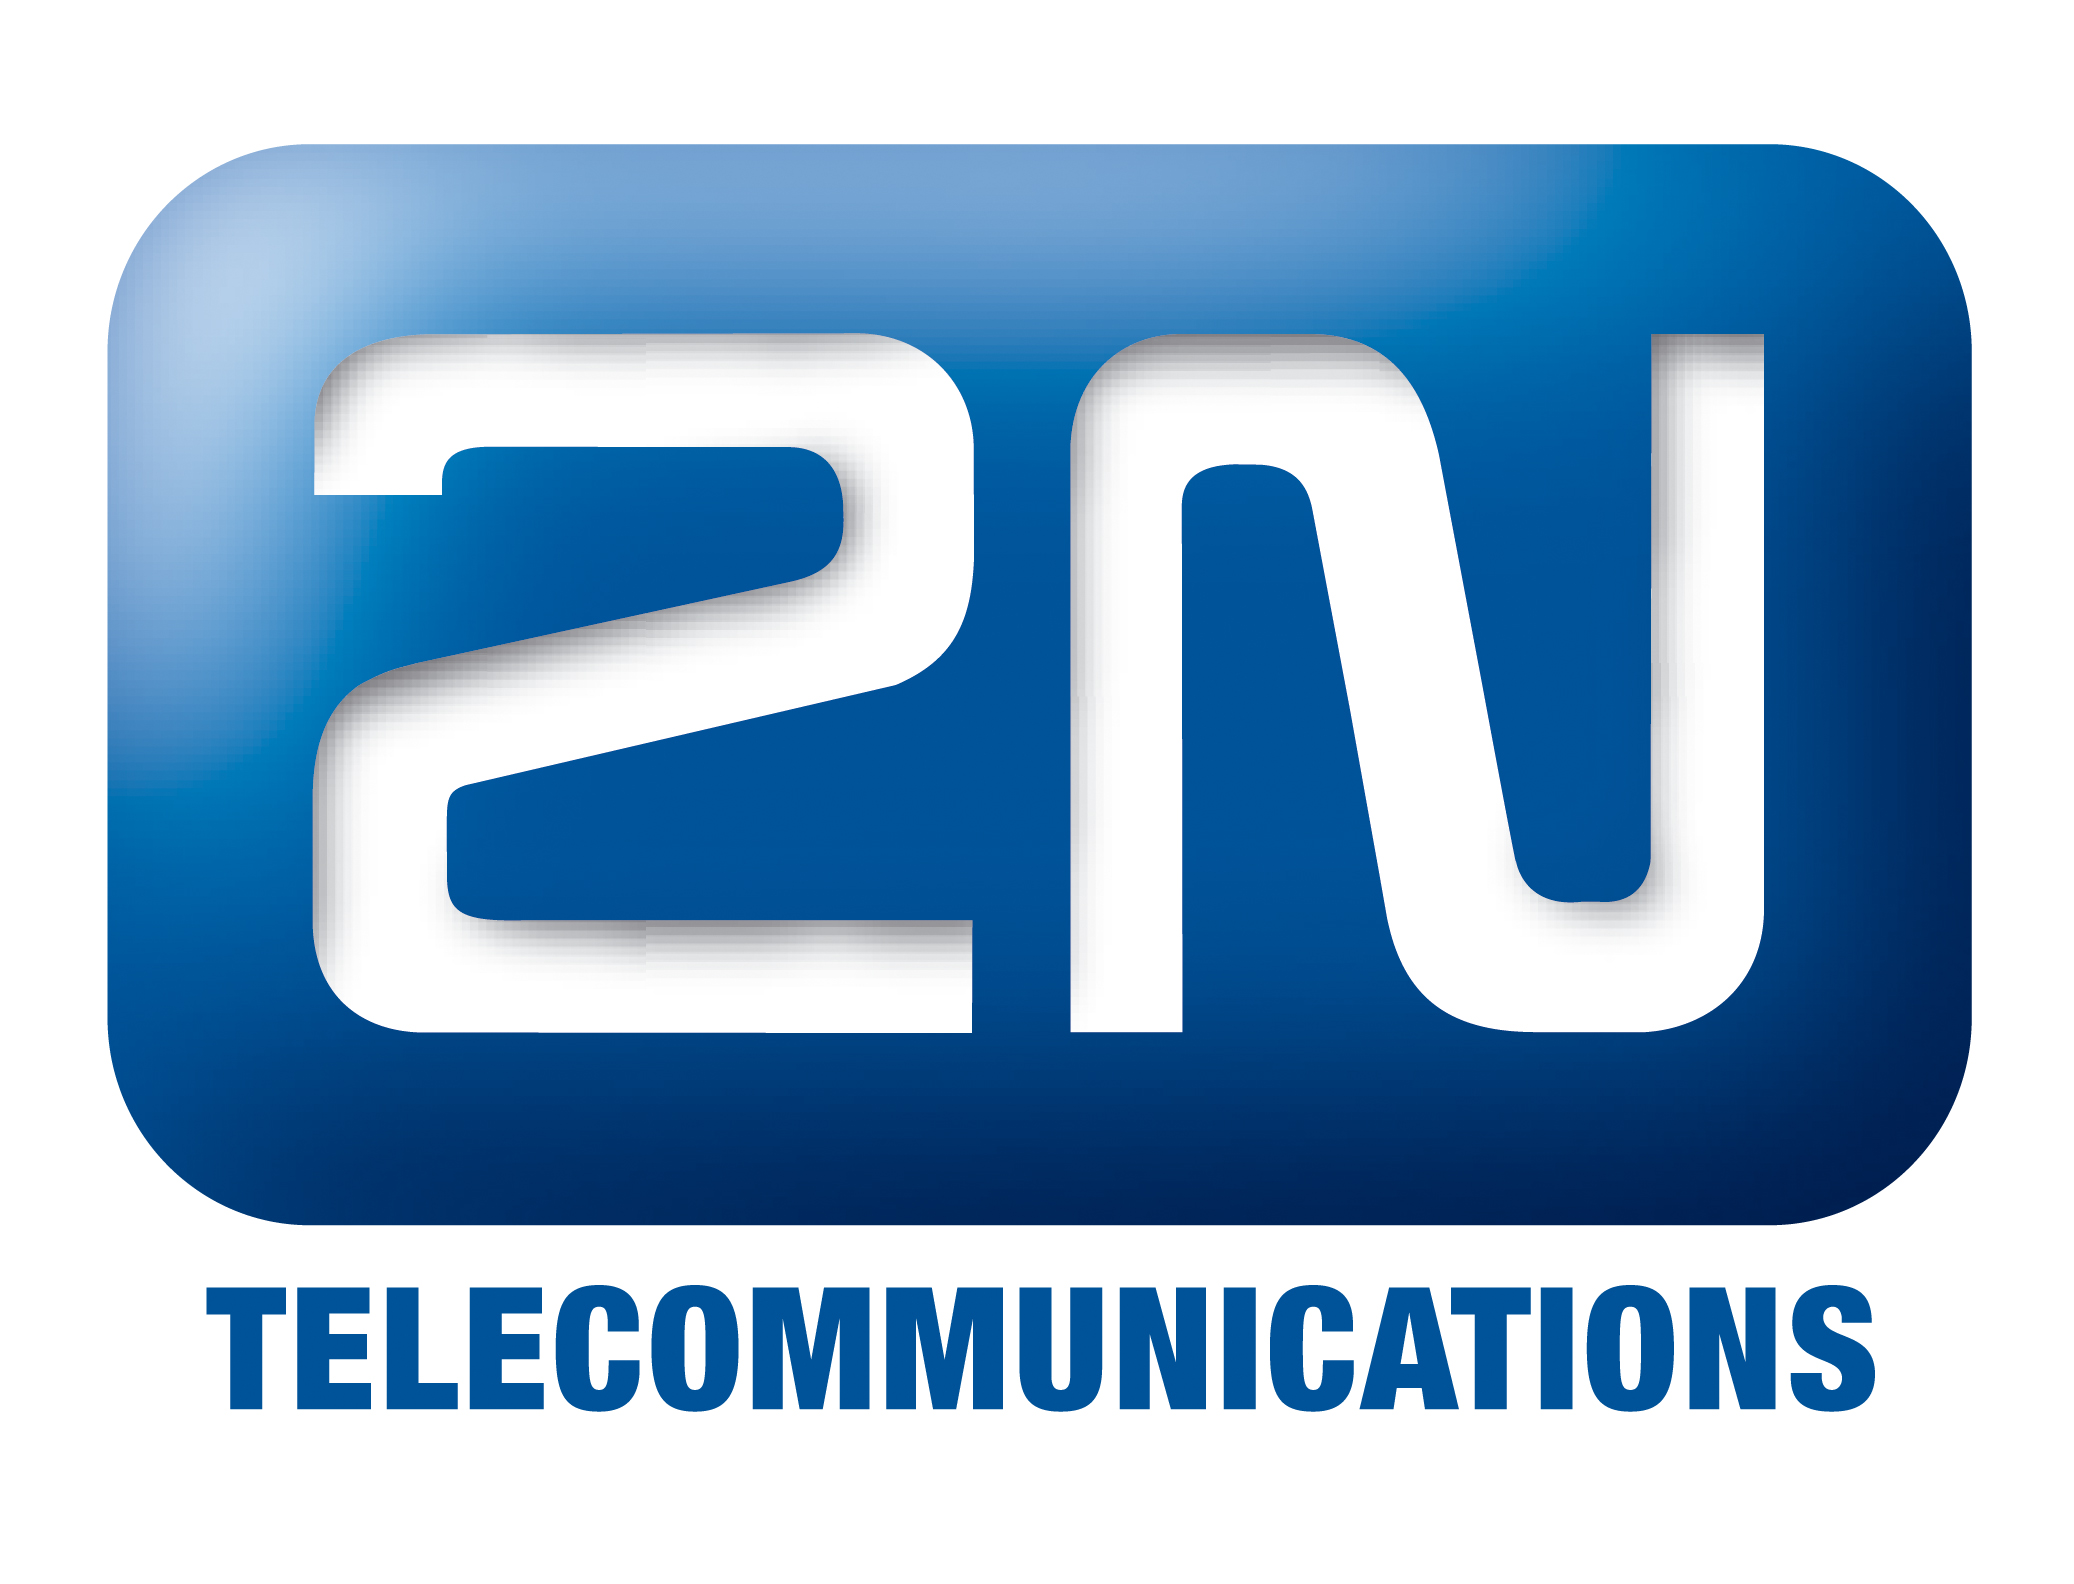 2N TELCOMMUNICATIONS